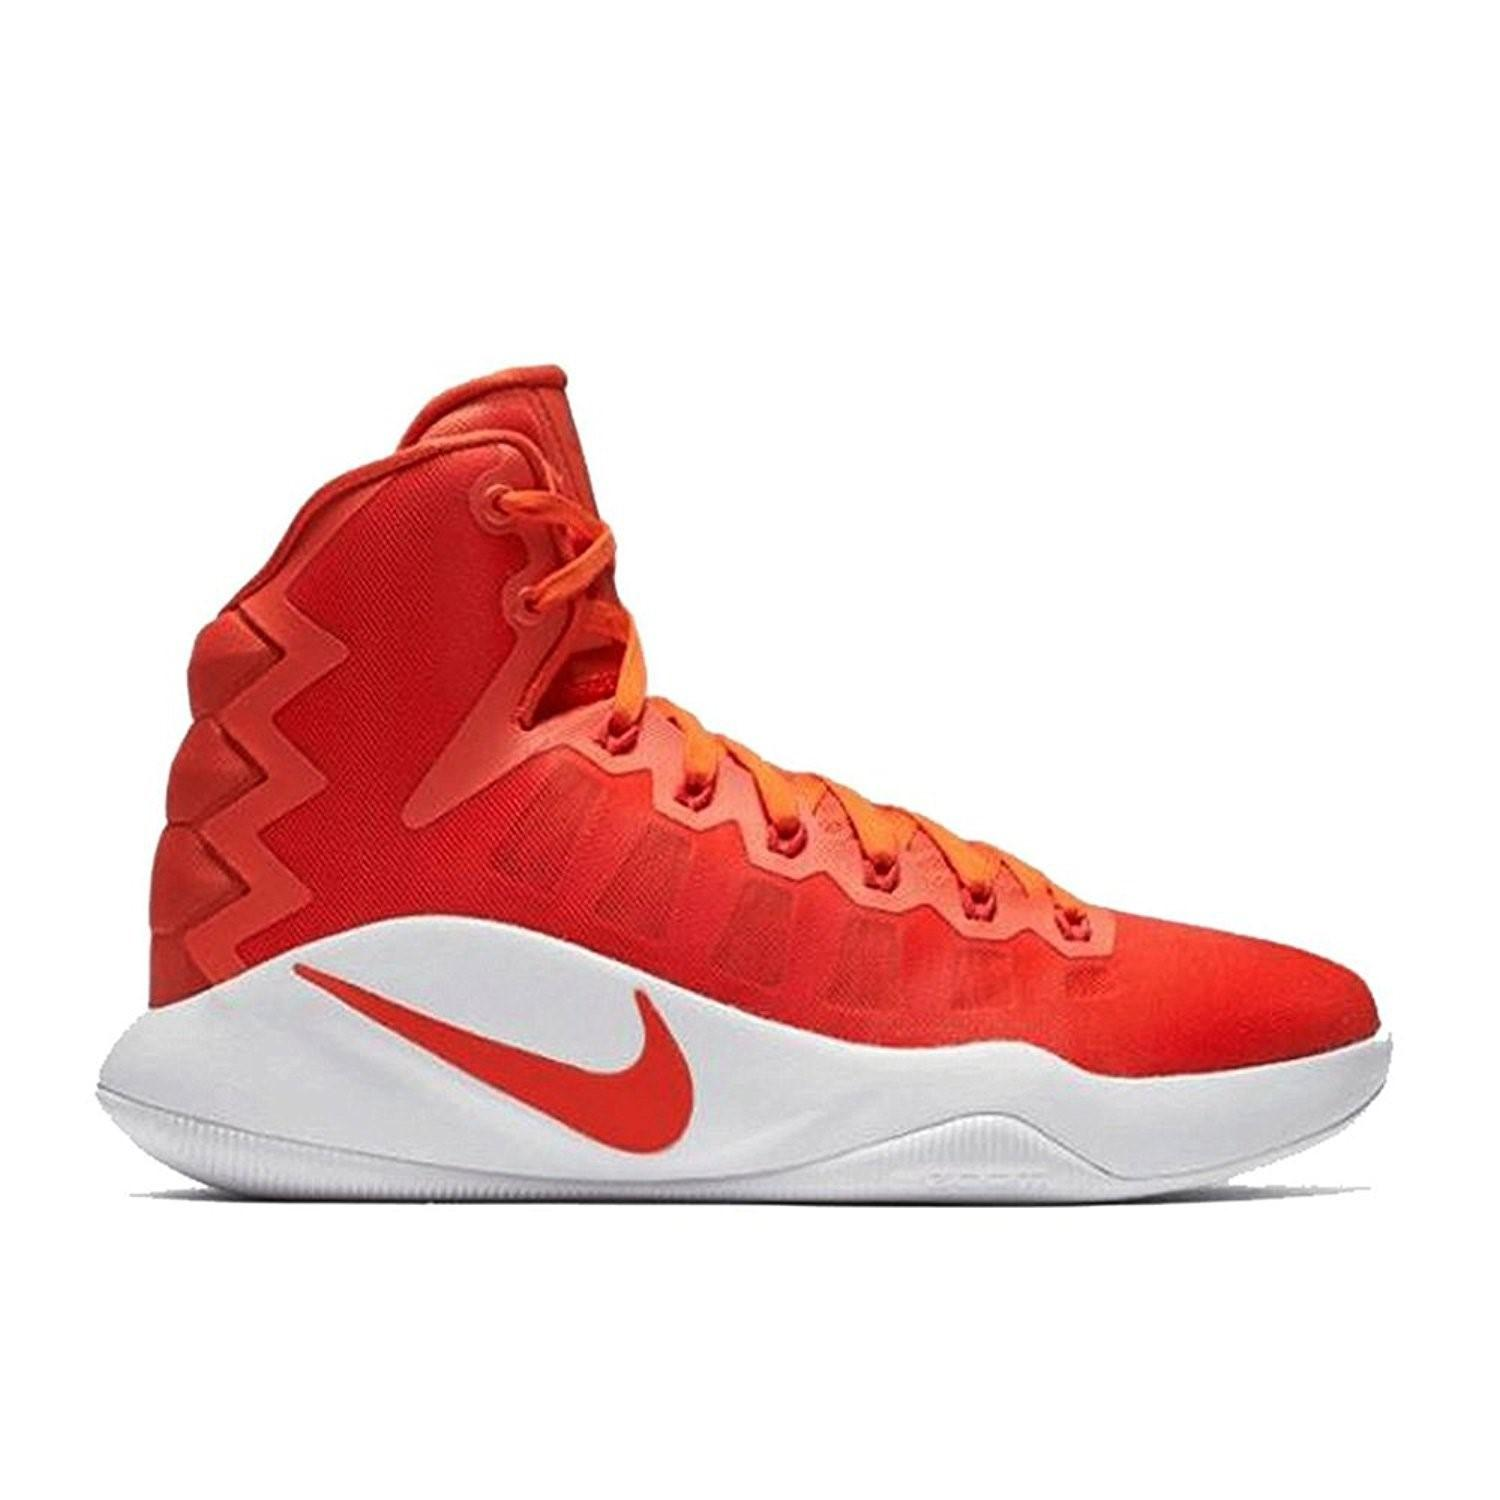 20e873d57723 Lyst - Nike Hyperdunk 2016 Mesh Lace-up Zoom Mid-top Basketball ...